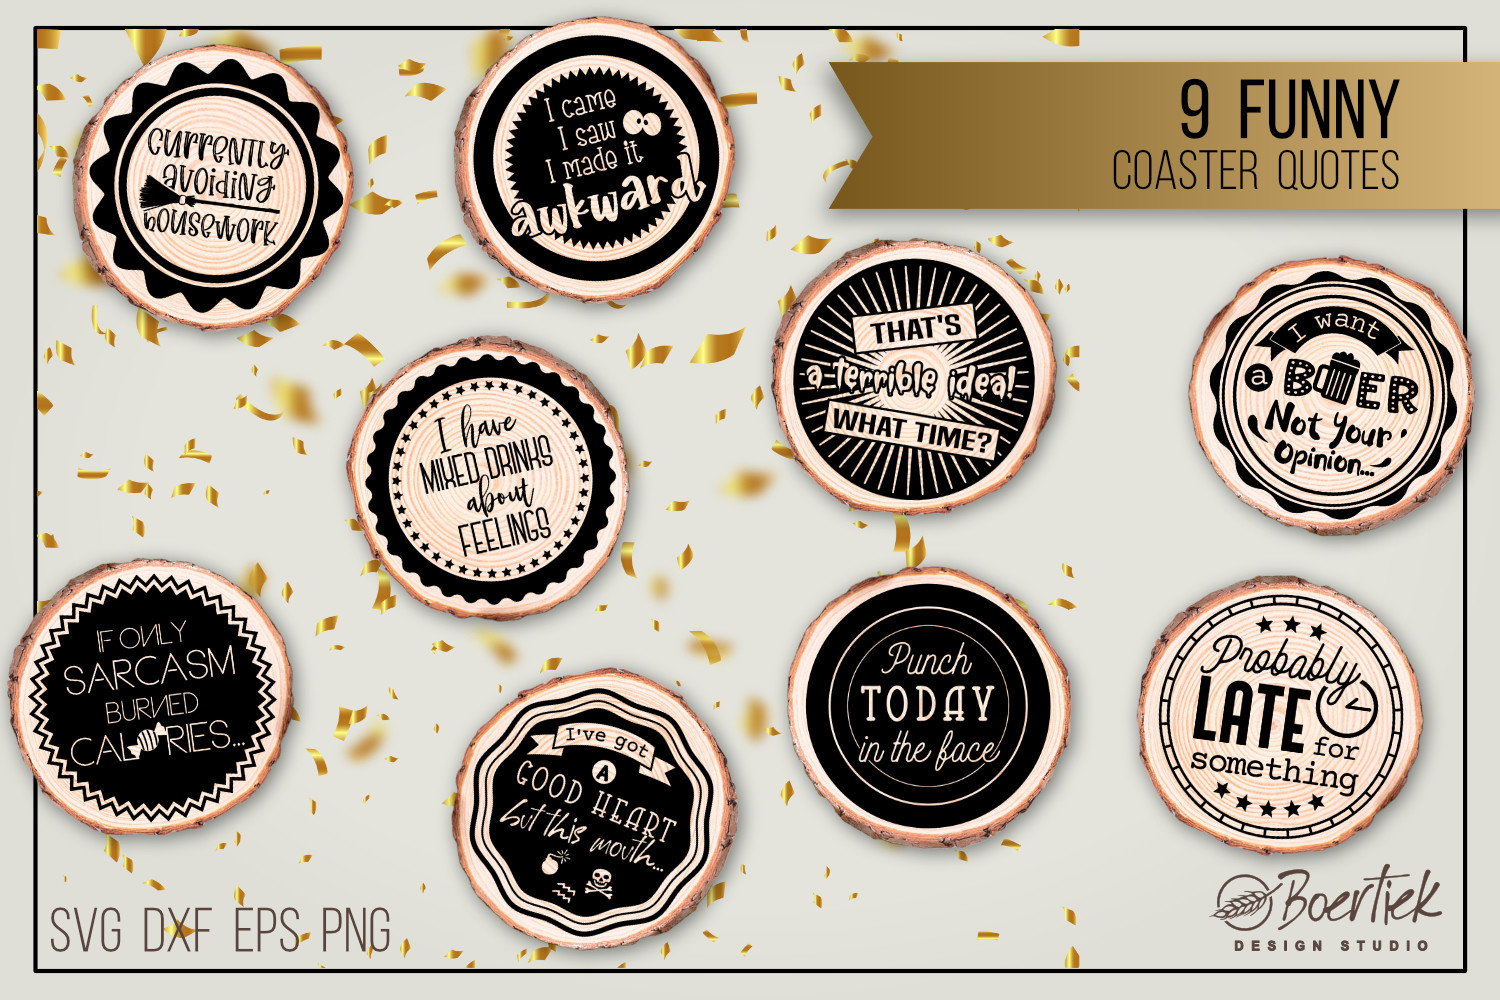 9 Funny Coaster Quotes SVG File